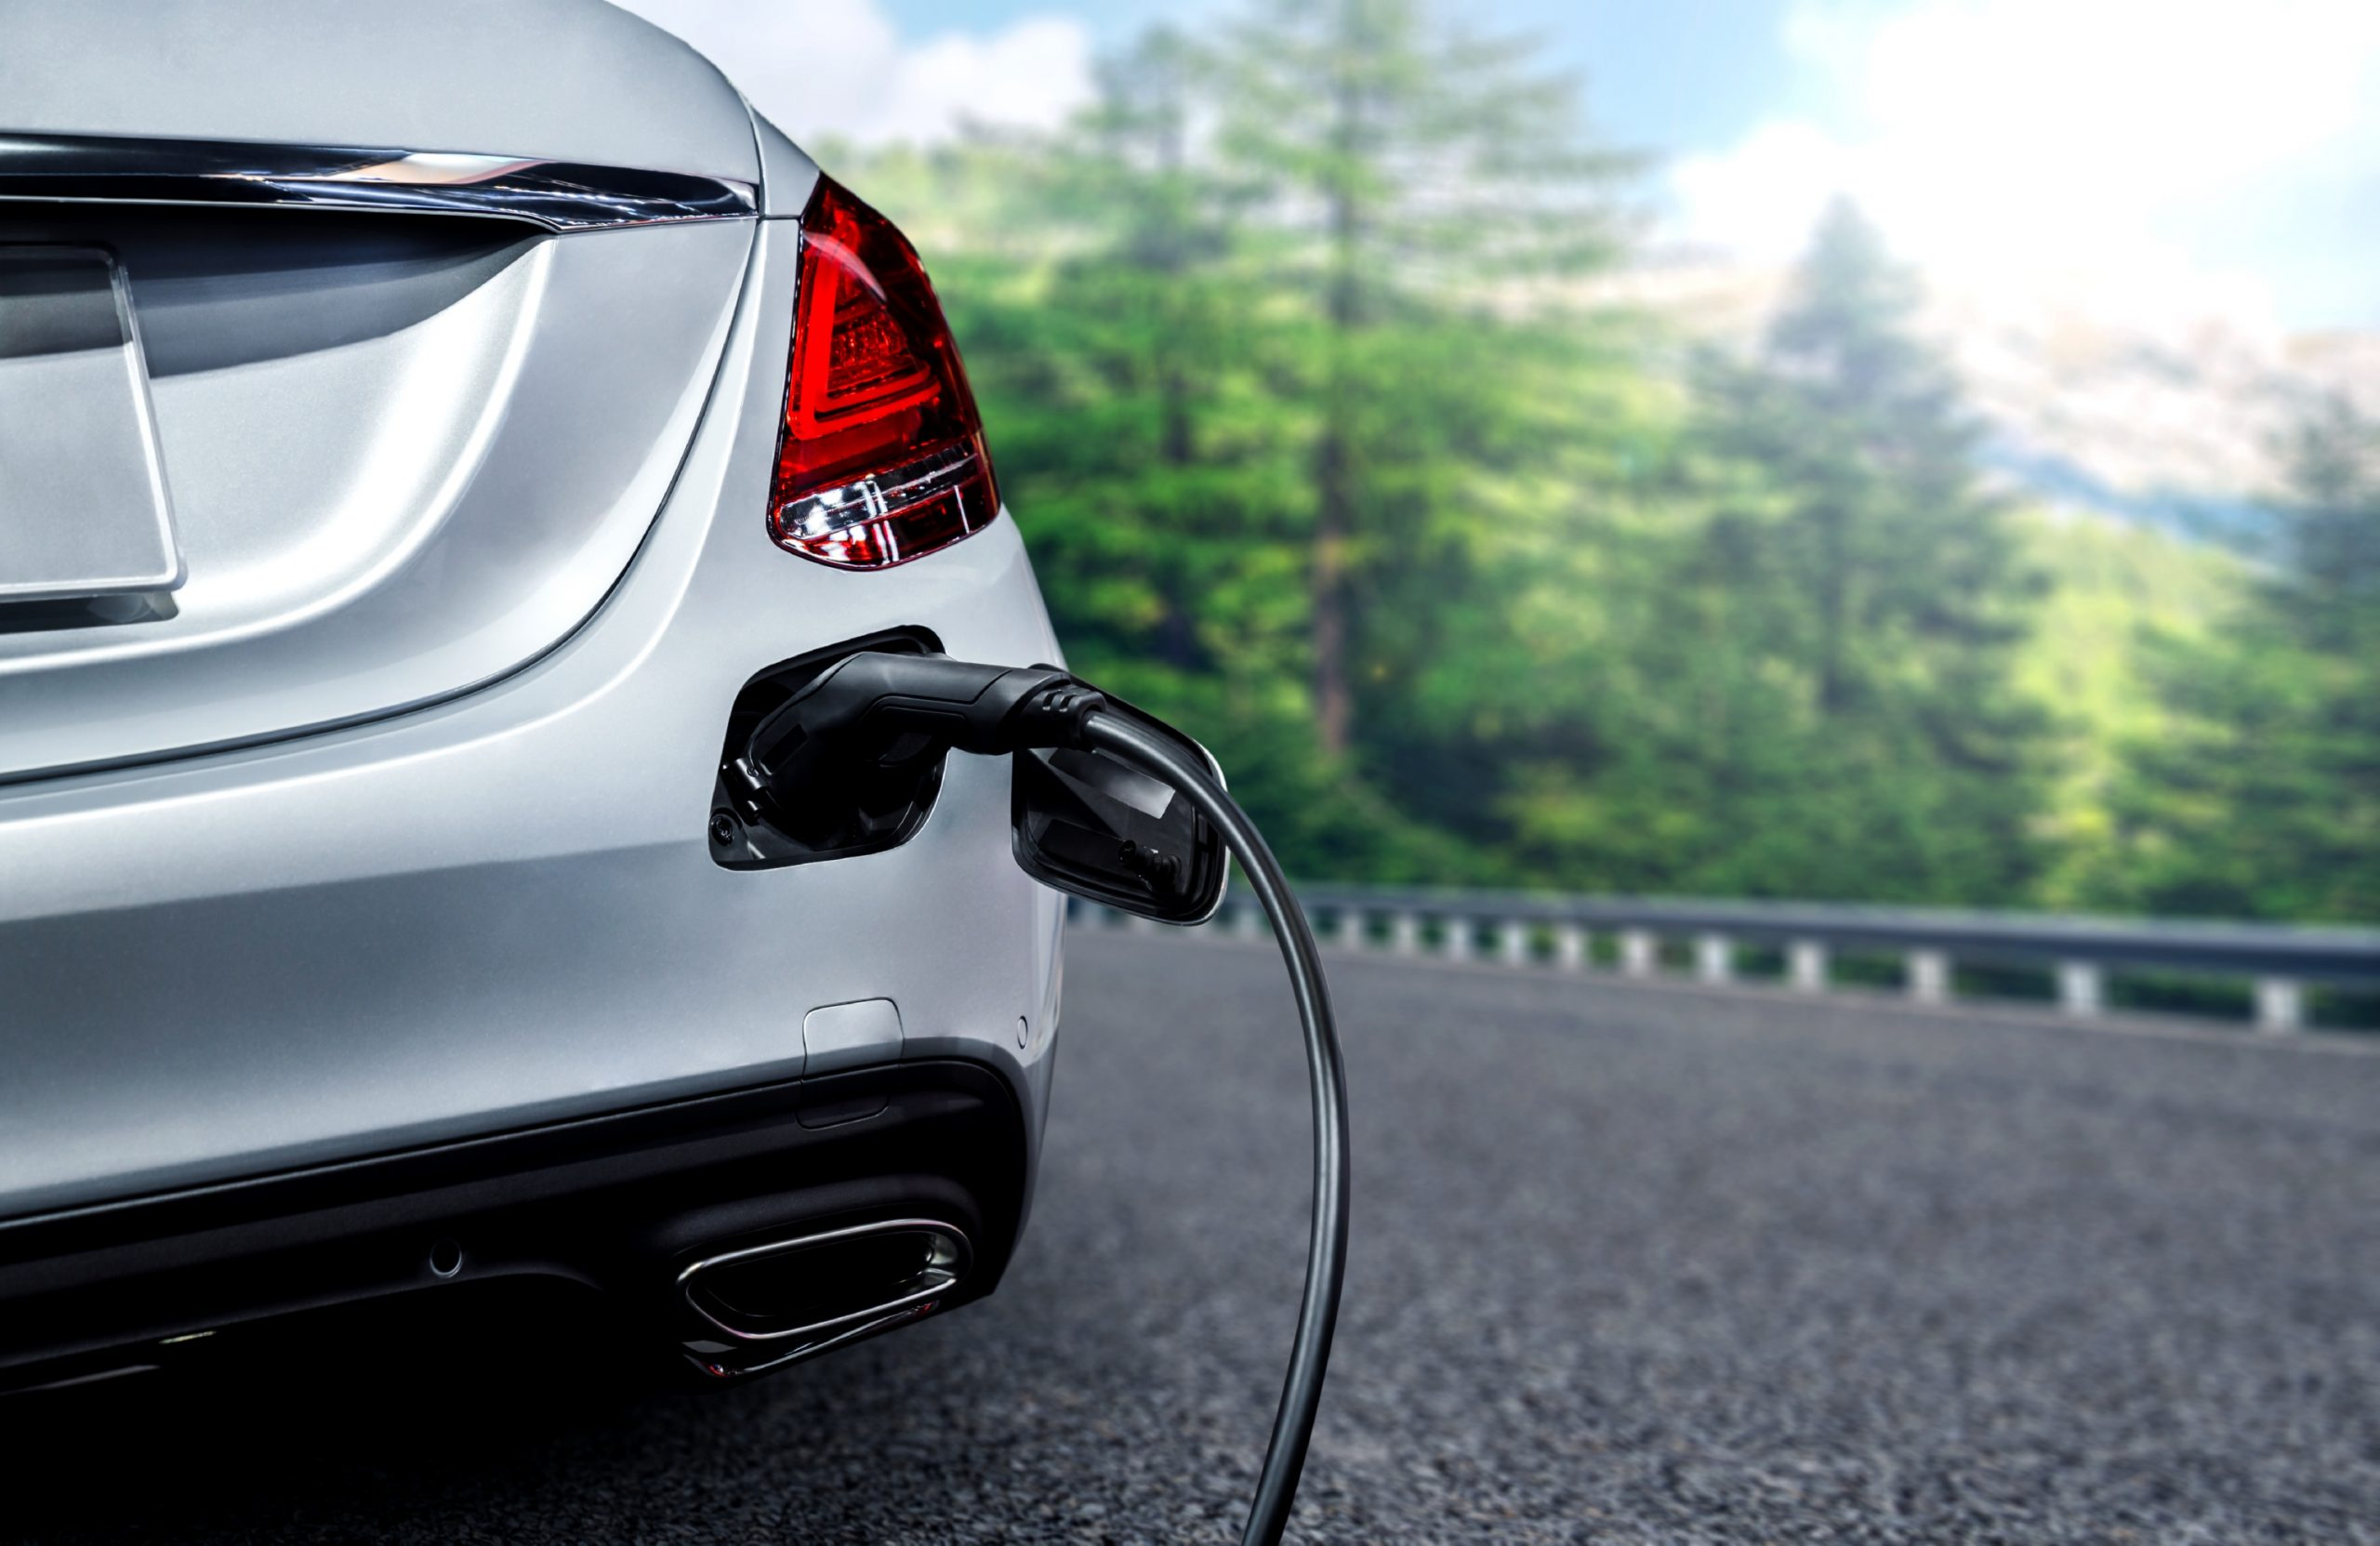 Road trip with an electric car